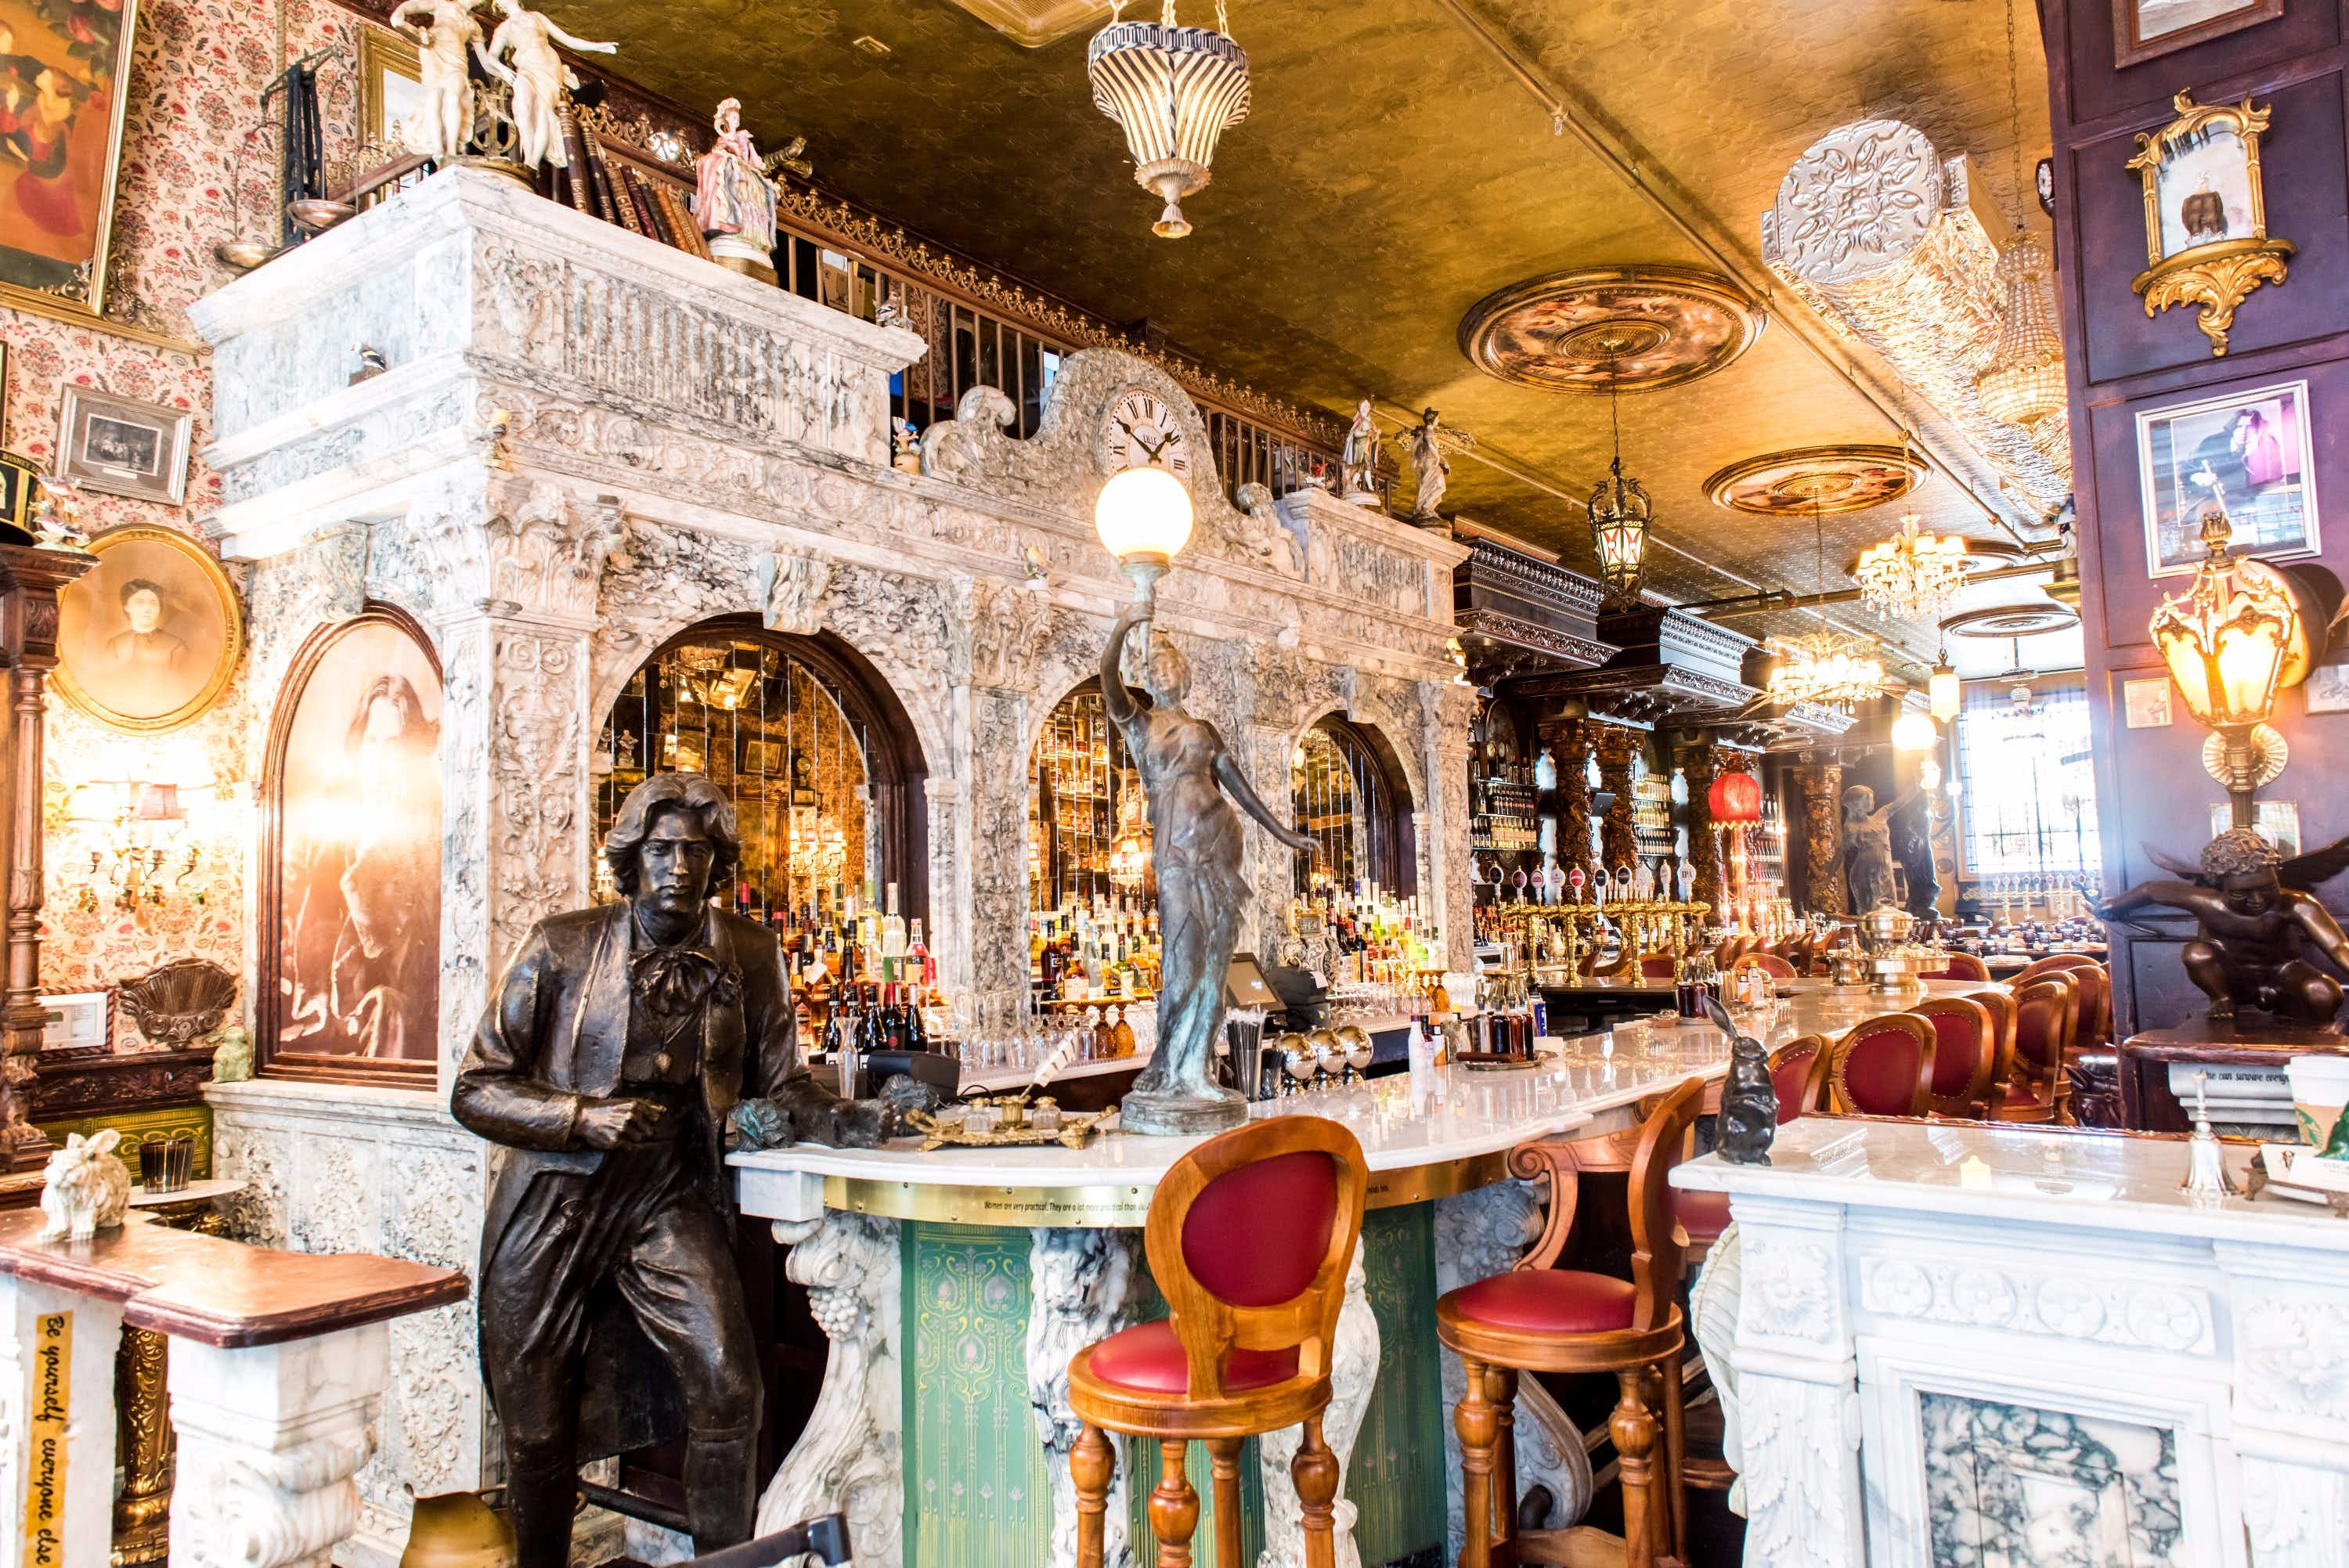 A glamorous Oscar Wilde-themed pub with the city's longest bar has opened in New York